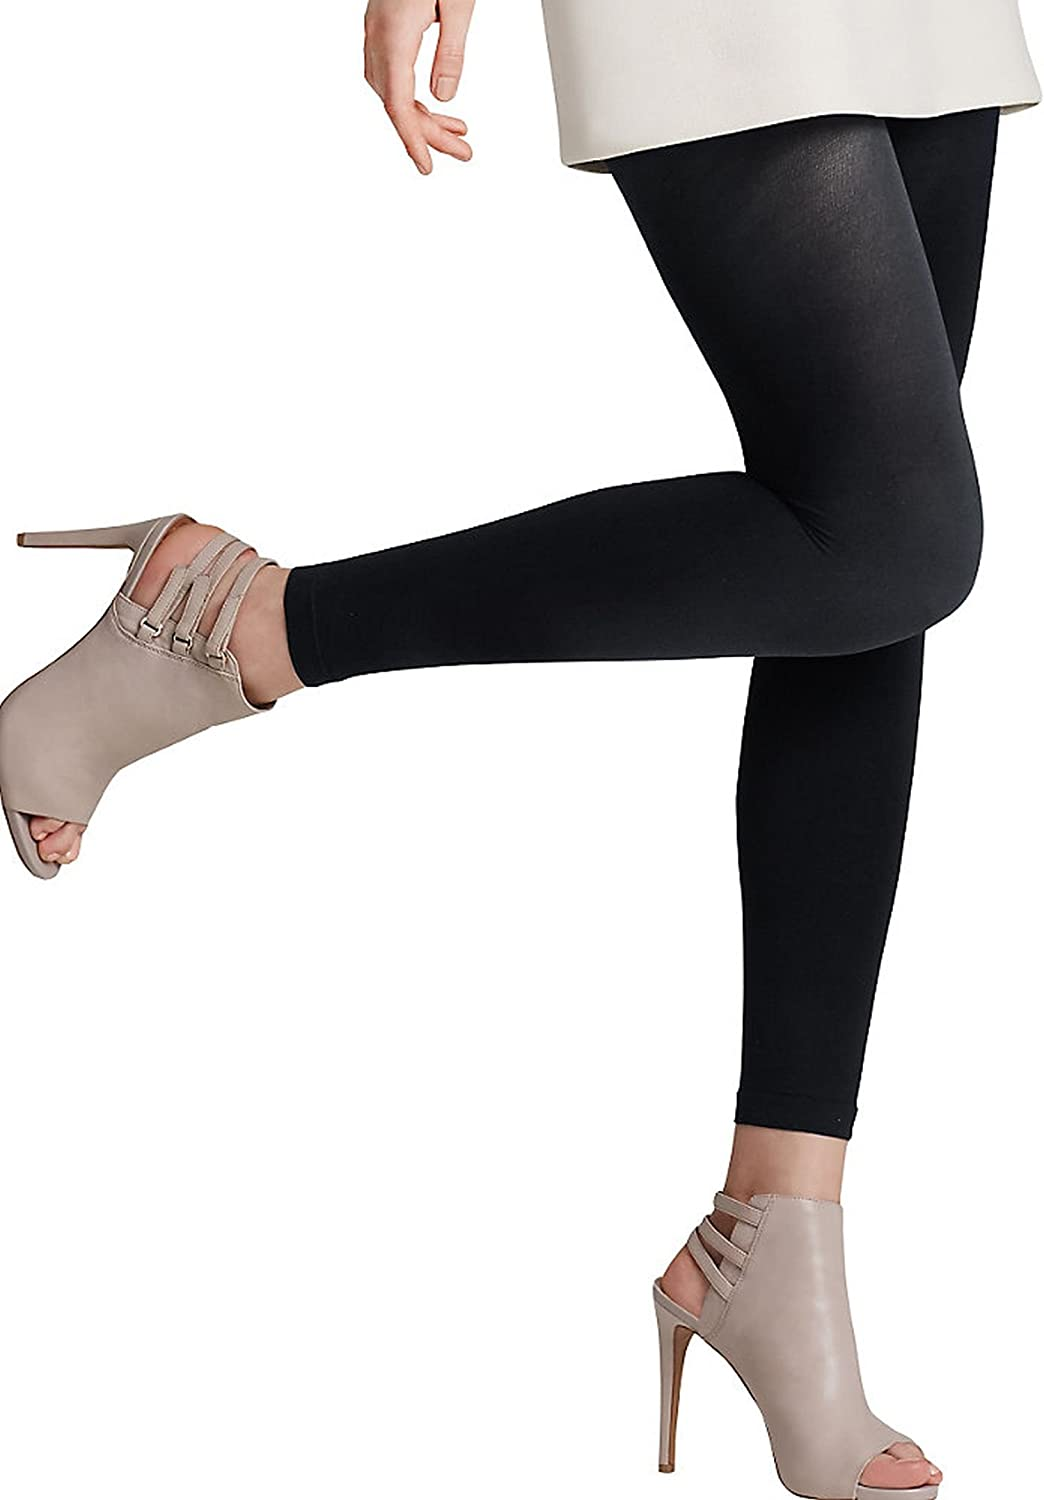 L'eggs womens Energy Graduated Compression Footless Tights Q02001 1 Pair